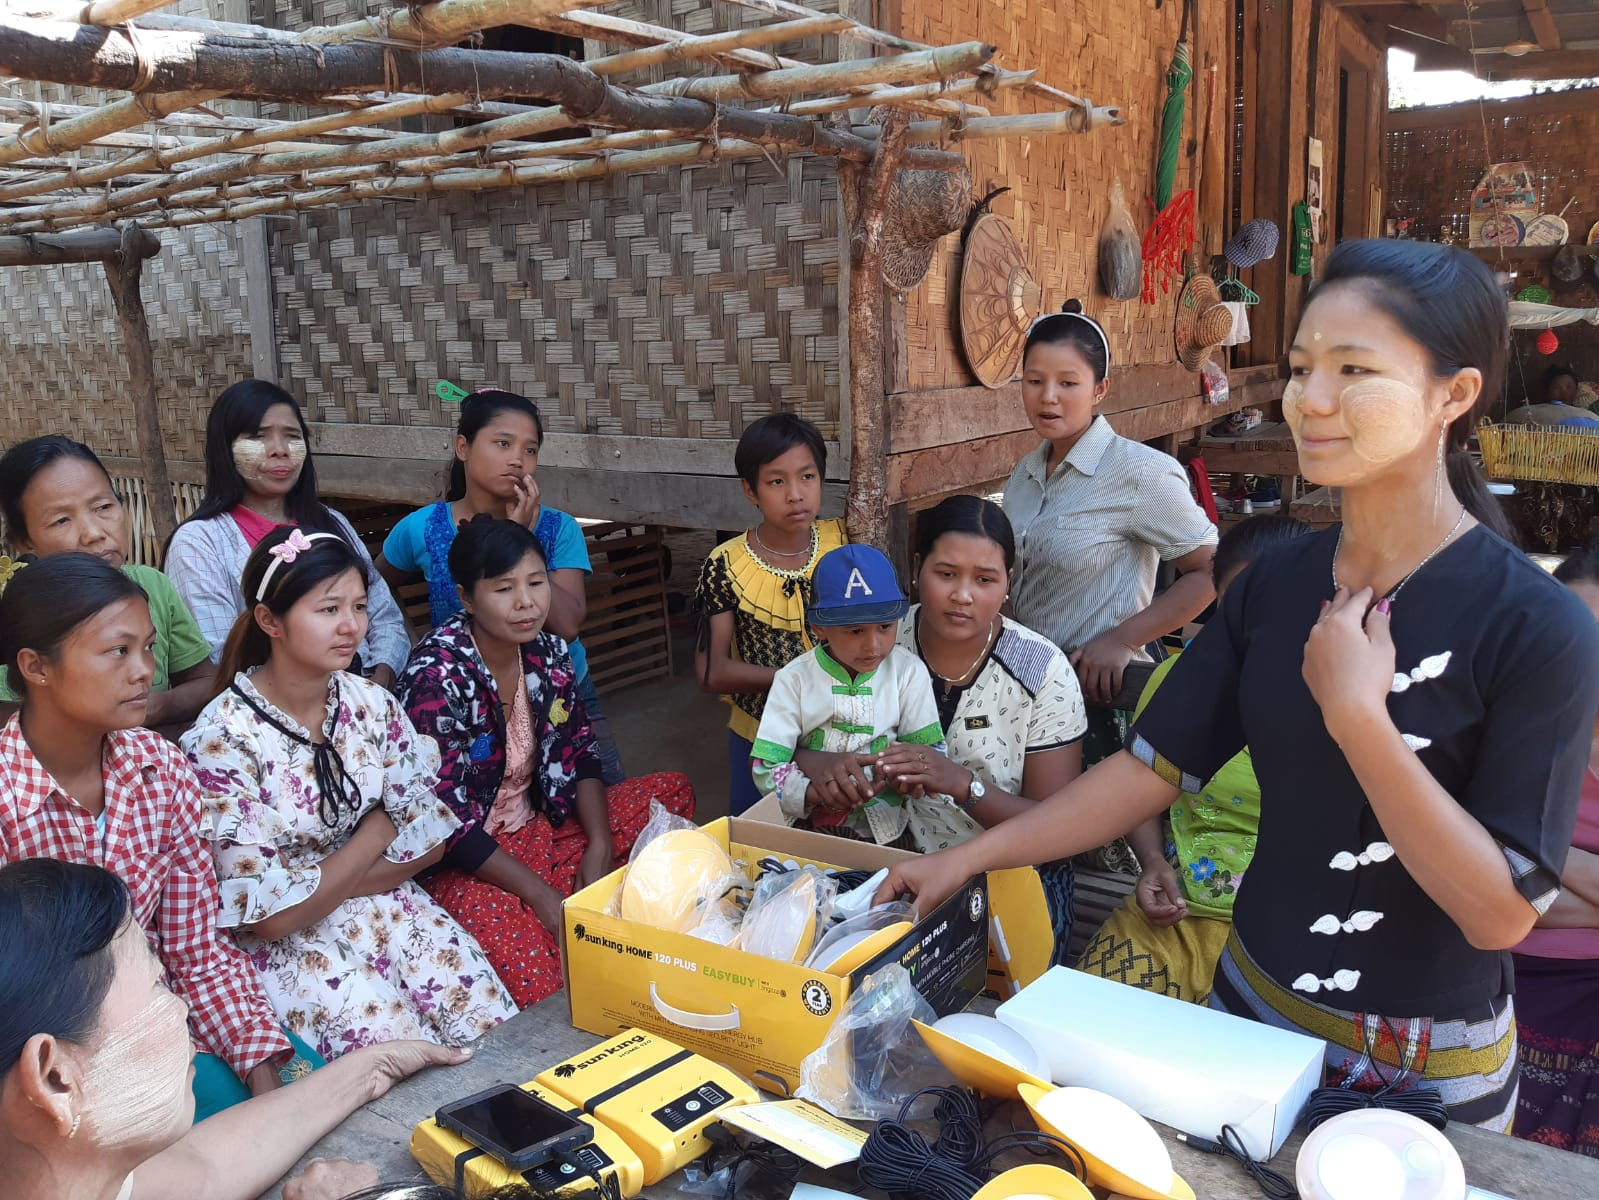 Myanmar strategic workshop Myanmar solar entrepreneurship kit women's entrepreneurship